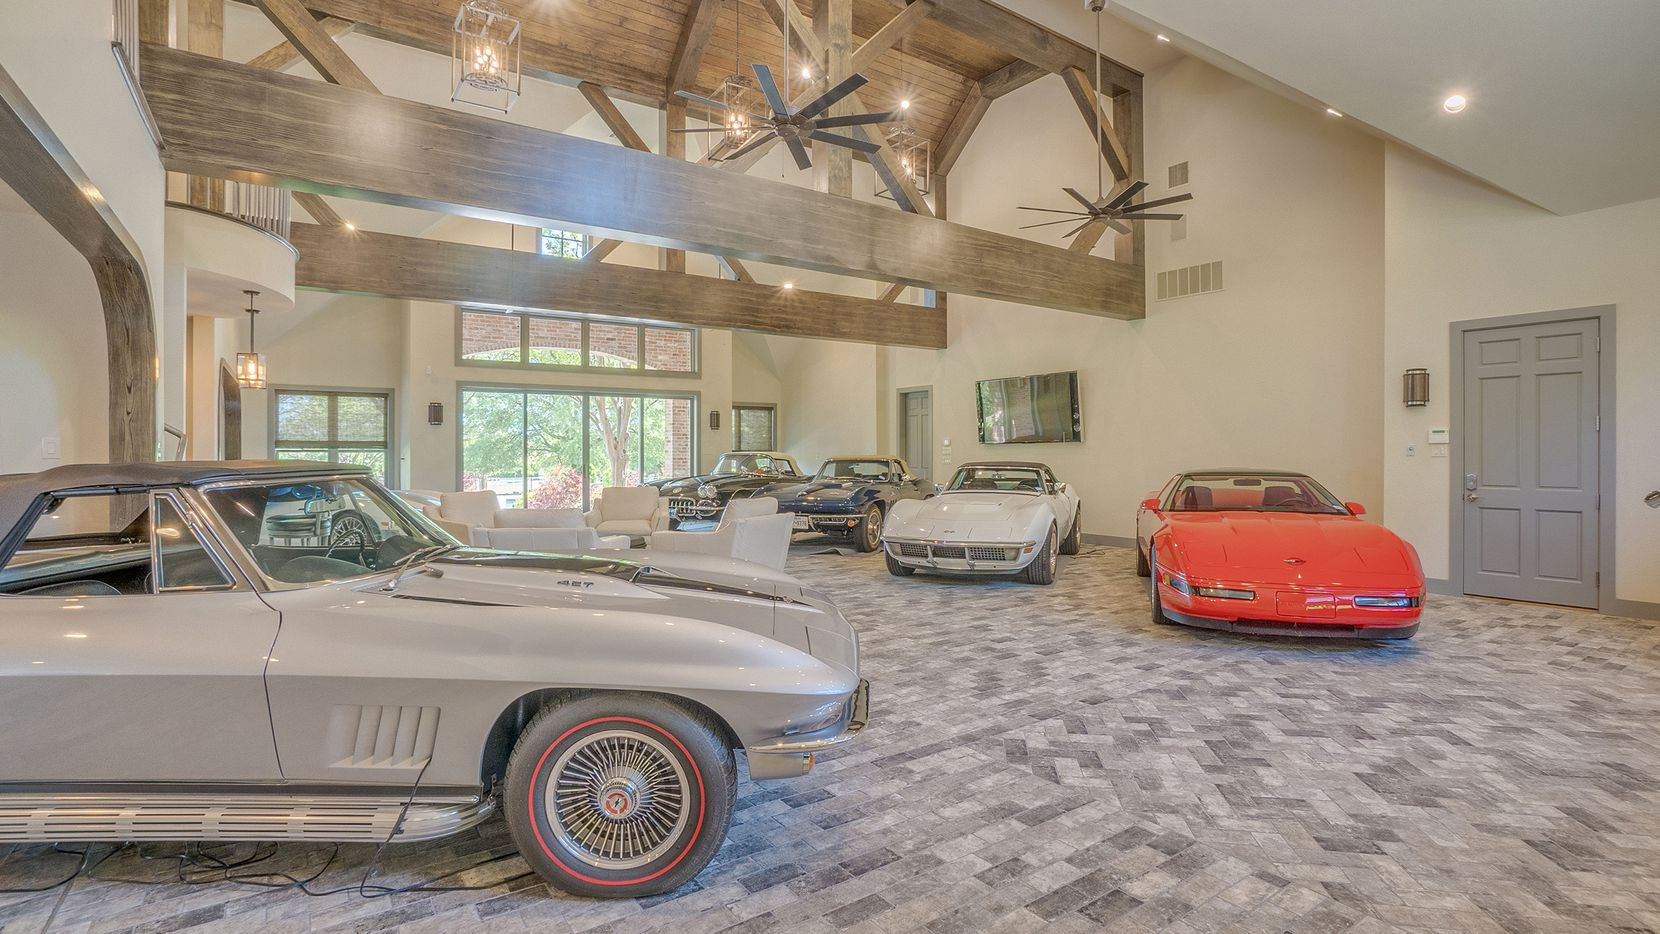 The residence at 7 Riva Ridge in Frisco includes a 16-plus-vehicle garage that is climate-controlled, converts into a showroom and has guest quarters.